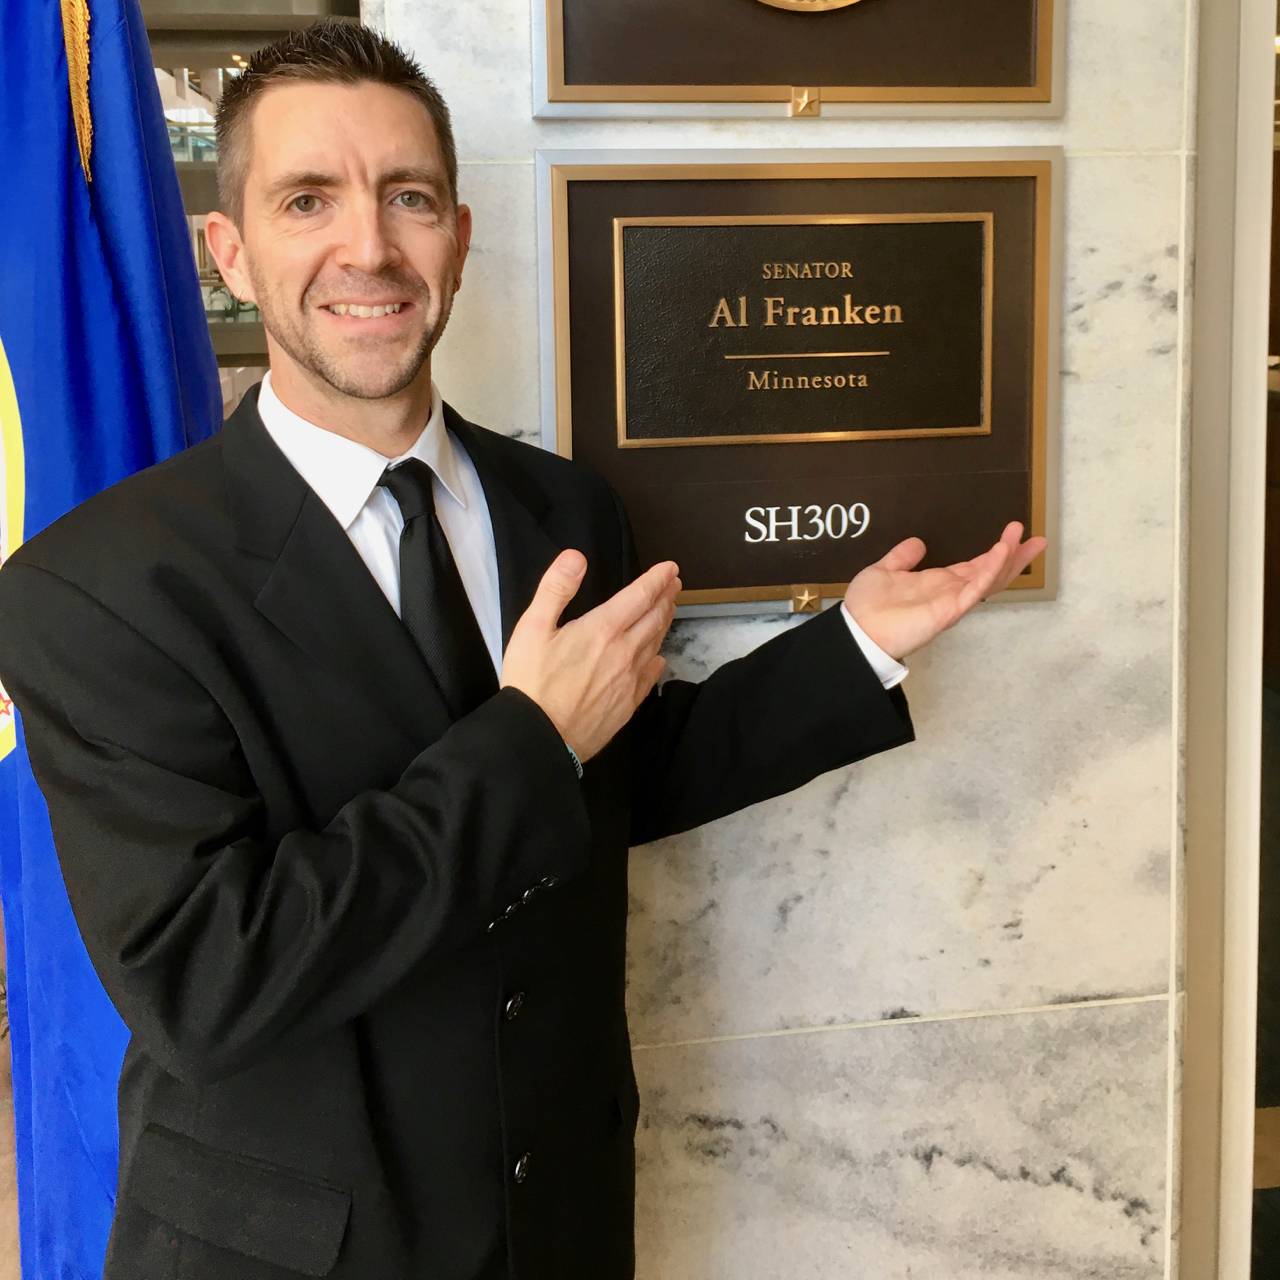 Jon Zal outside Al Franken's office